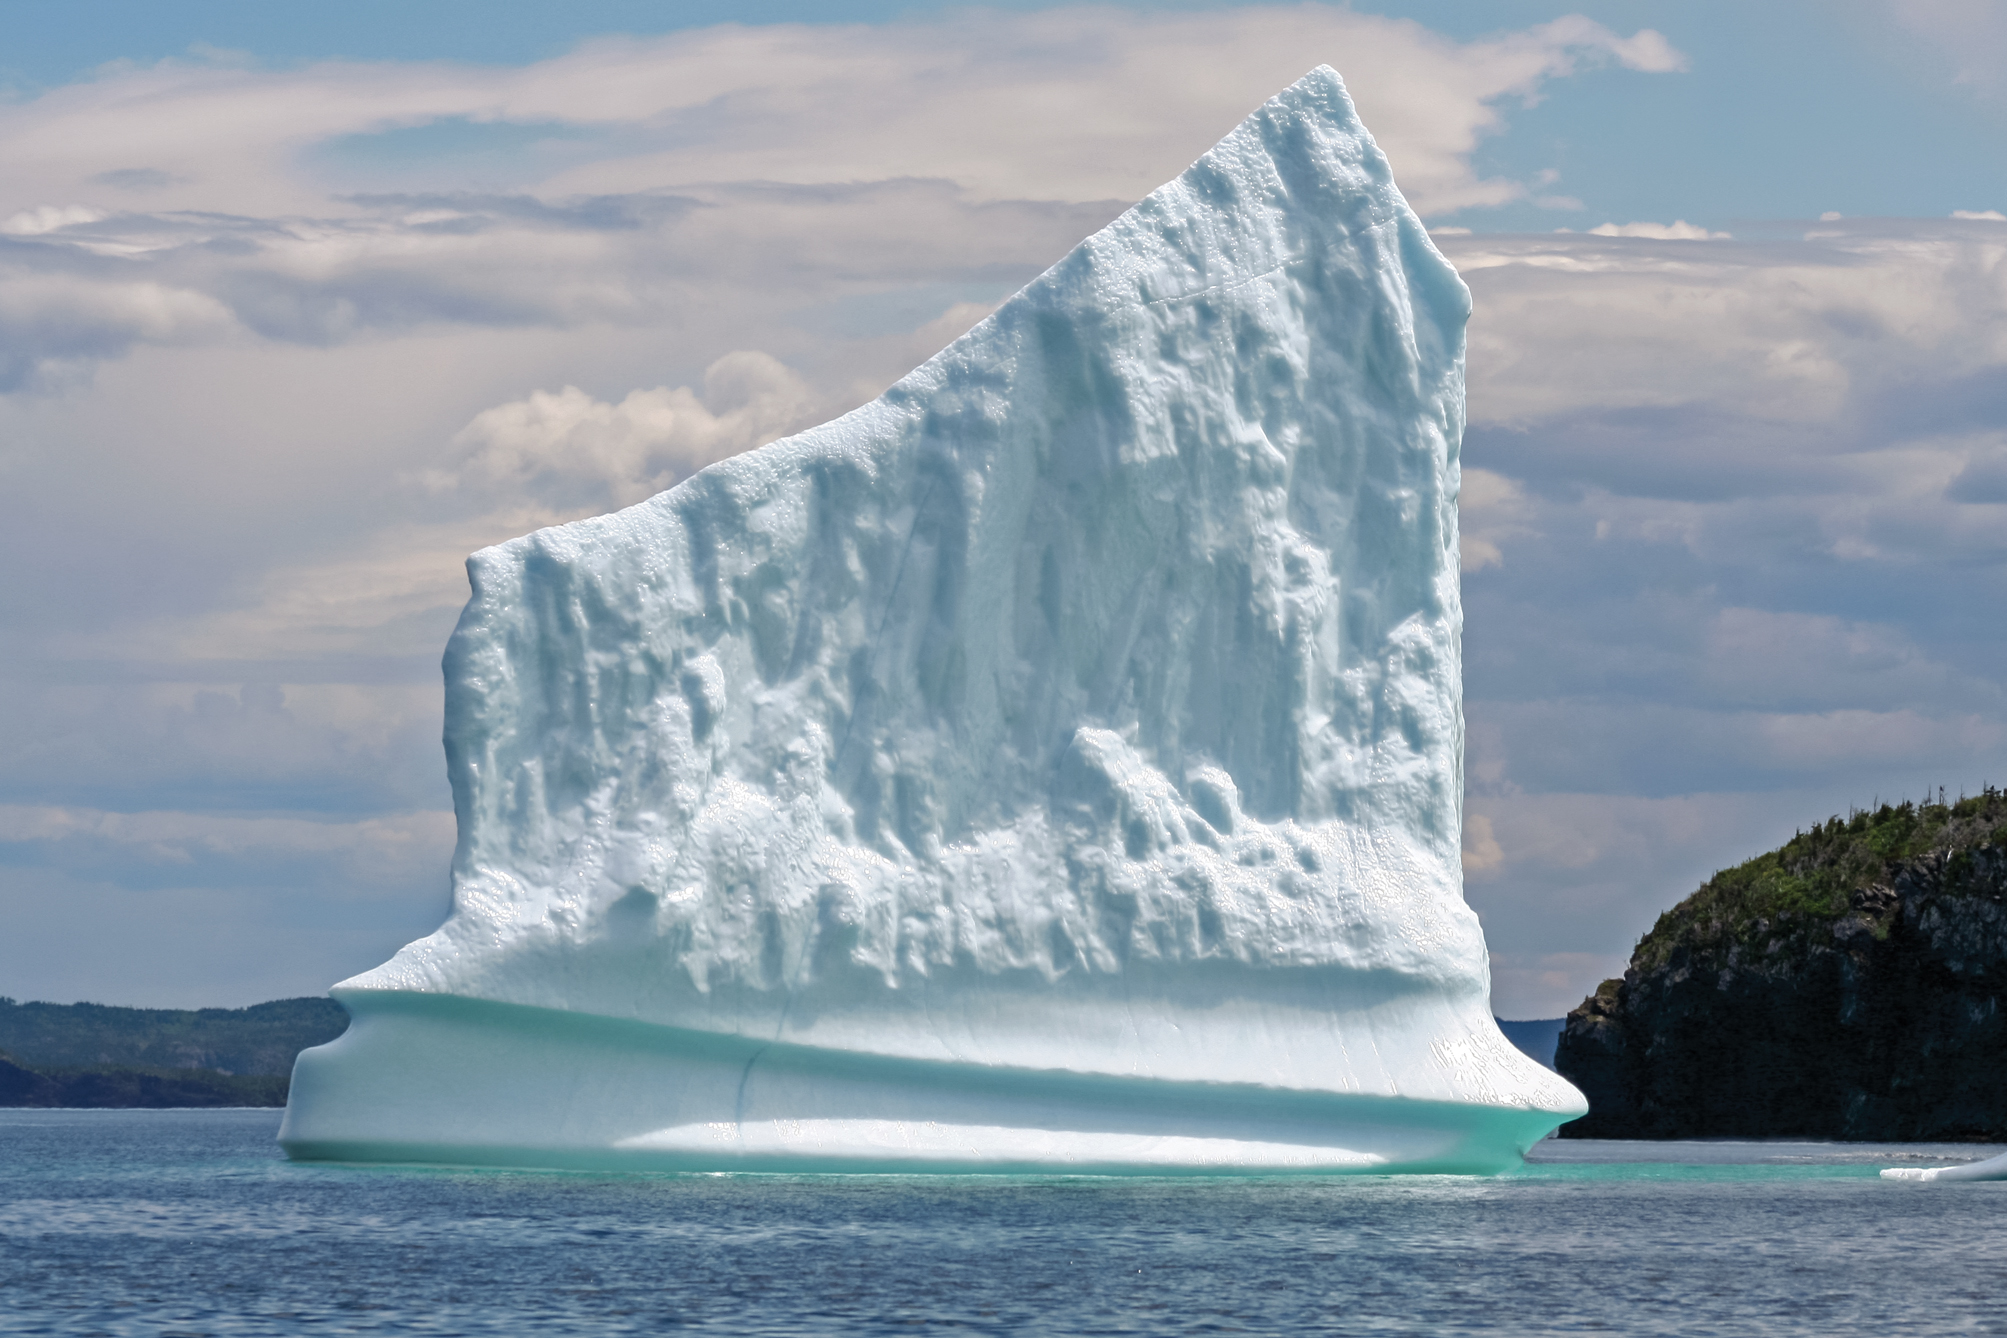 Harp Shaped Iceberg Near Triton Island G